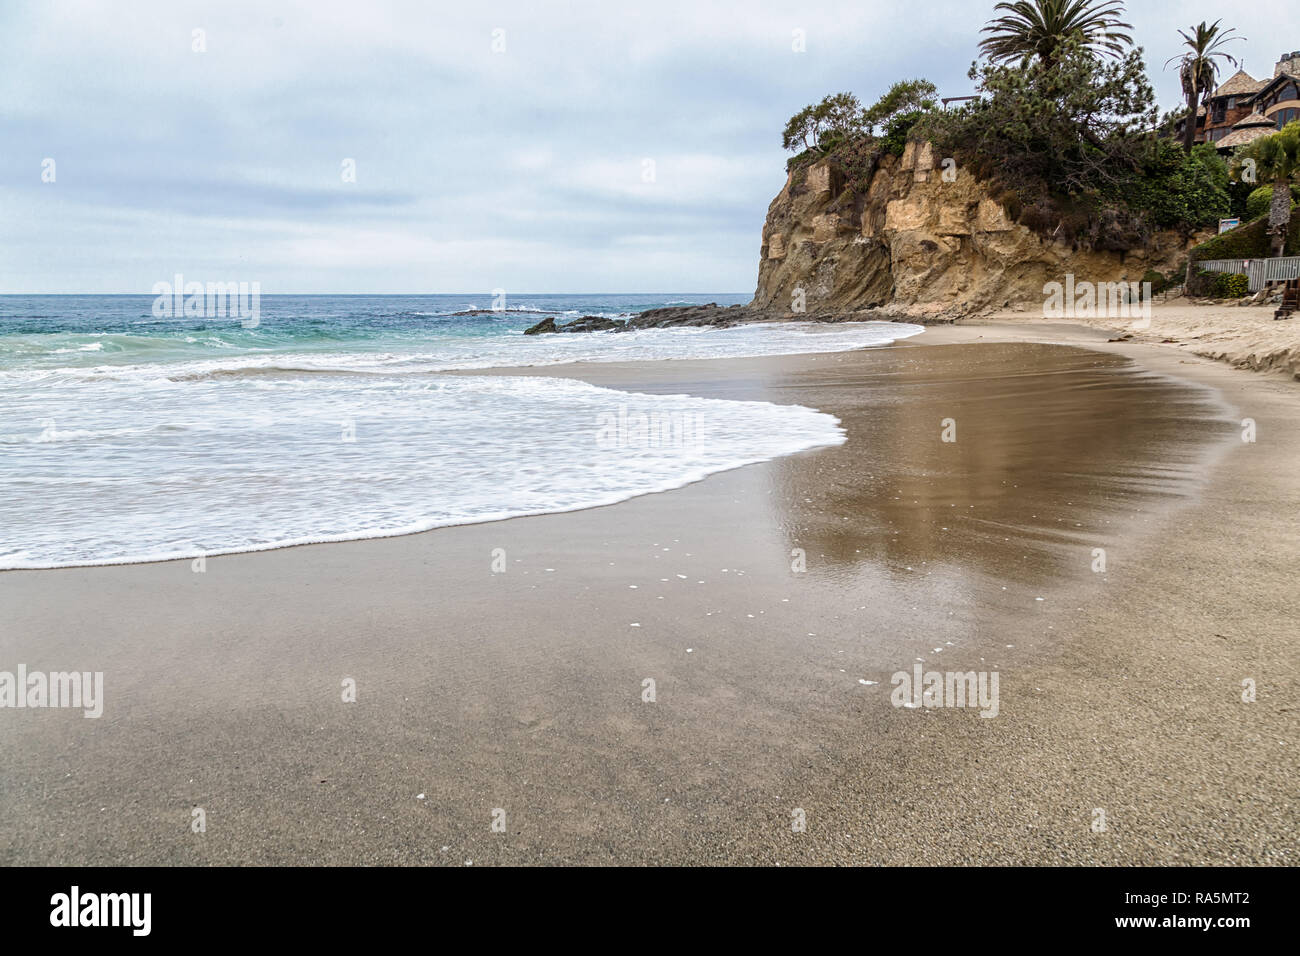 A Day in Laguna Beach, California Stock Photo